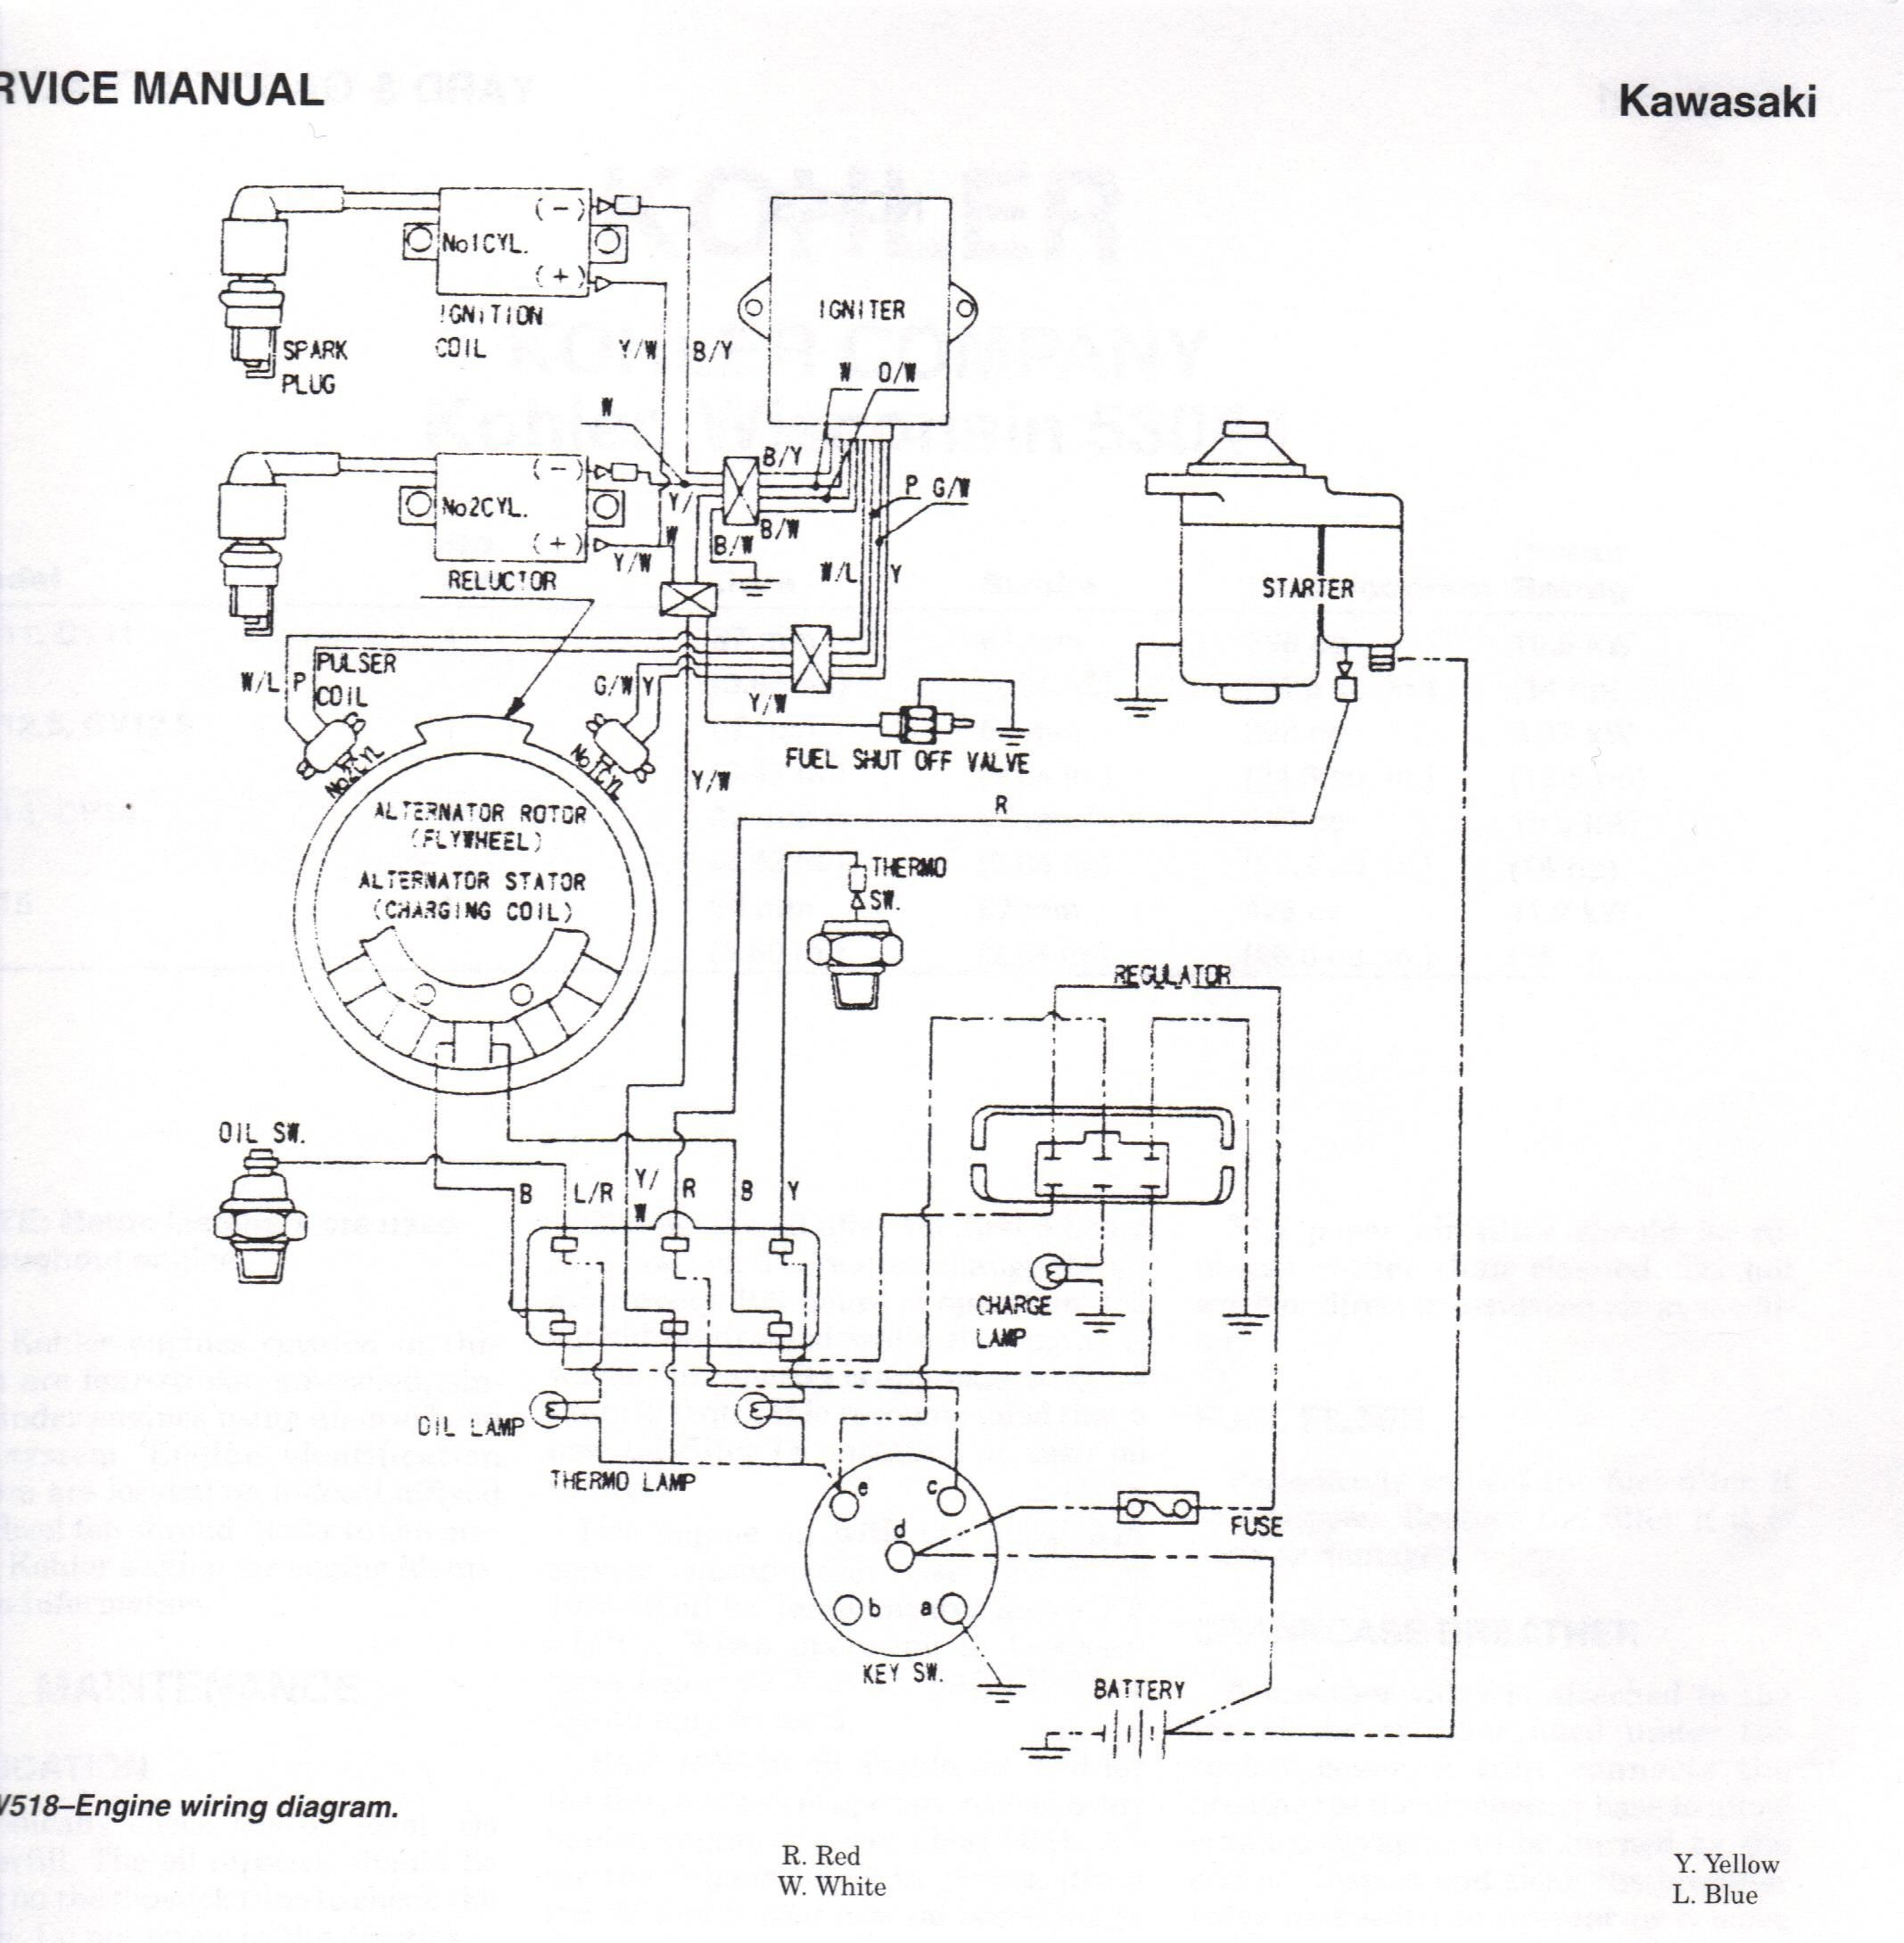 john deere 757 wiring diagram Collection-wiring diagrams for 757 john deere 25 hp kawasaki diagram Yahoo Image Search Results 18-a